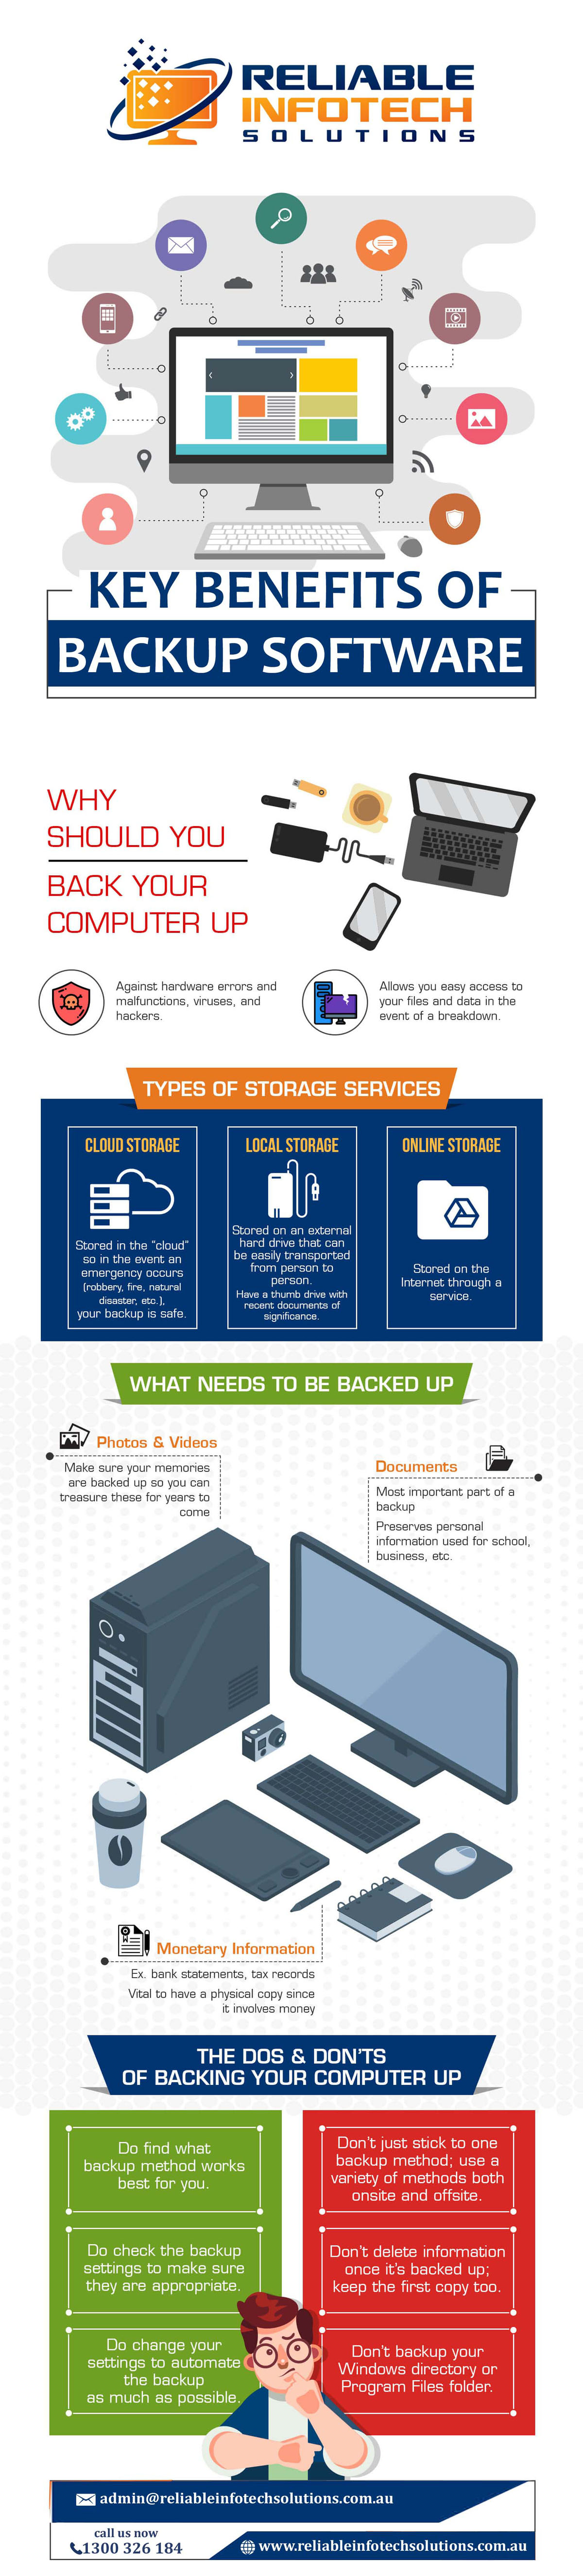 Backup Software: Benefits and Advantages You Need To Know [Infographic]